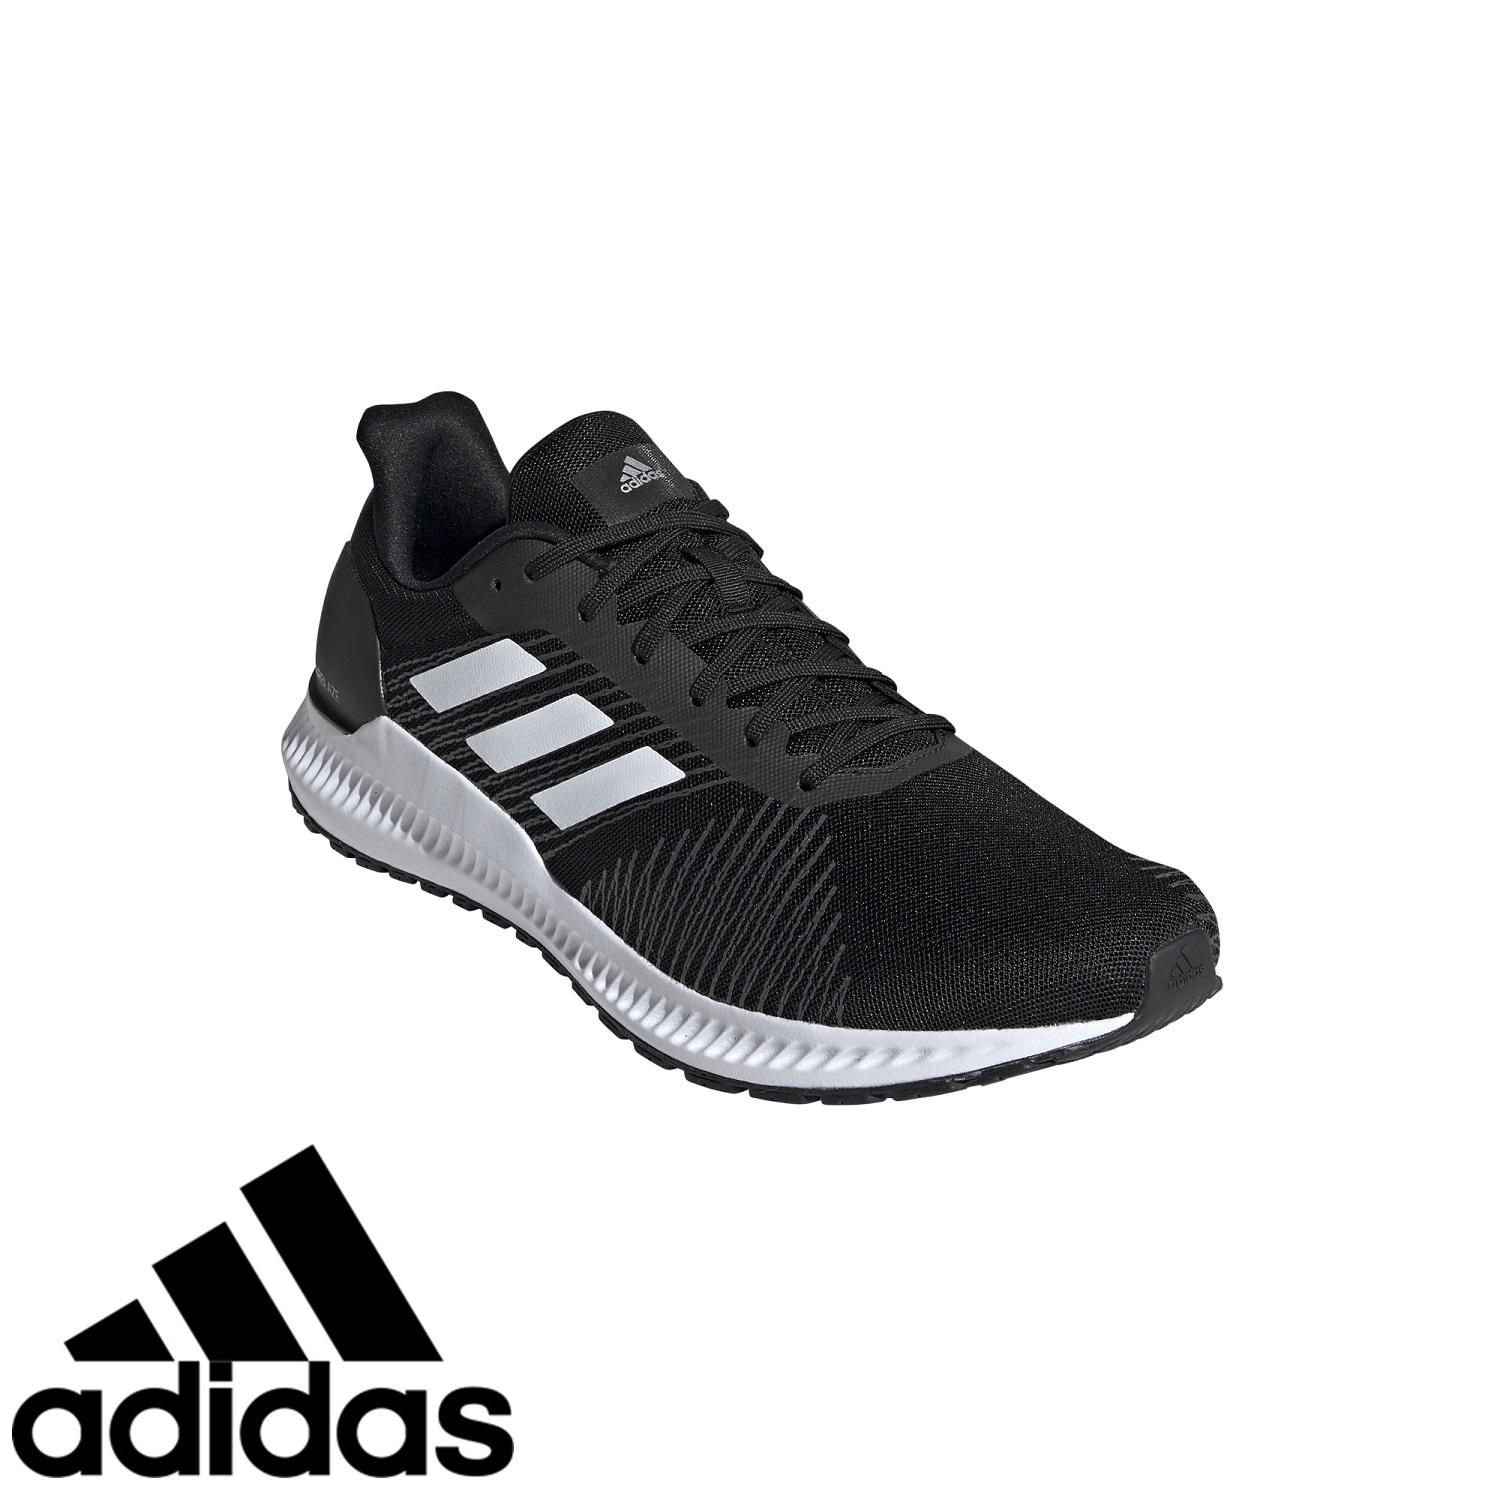 premium selection 9c128 d3653 adidas Solar Blaze Men s Running Shoes (G27775)